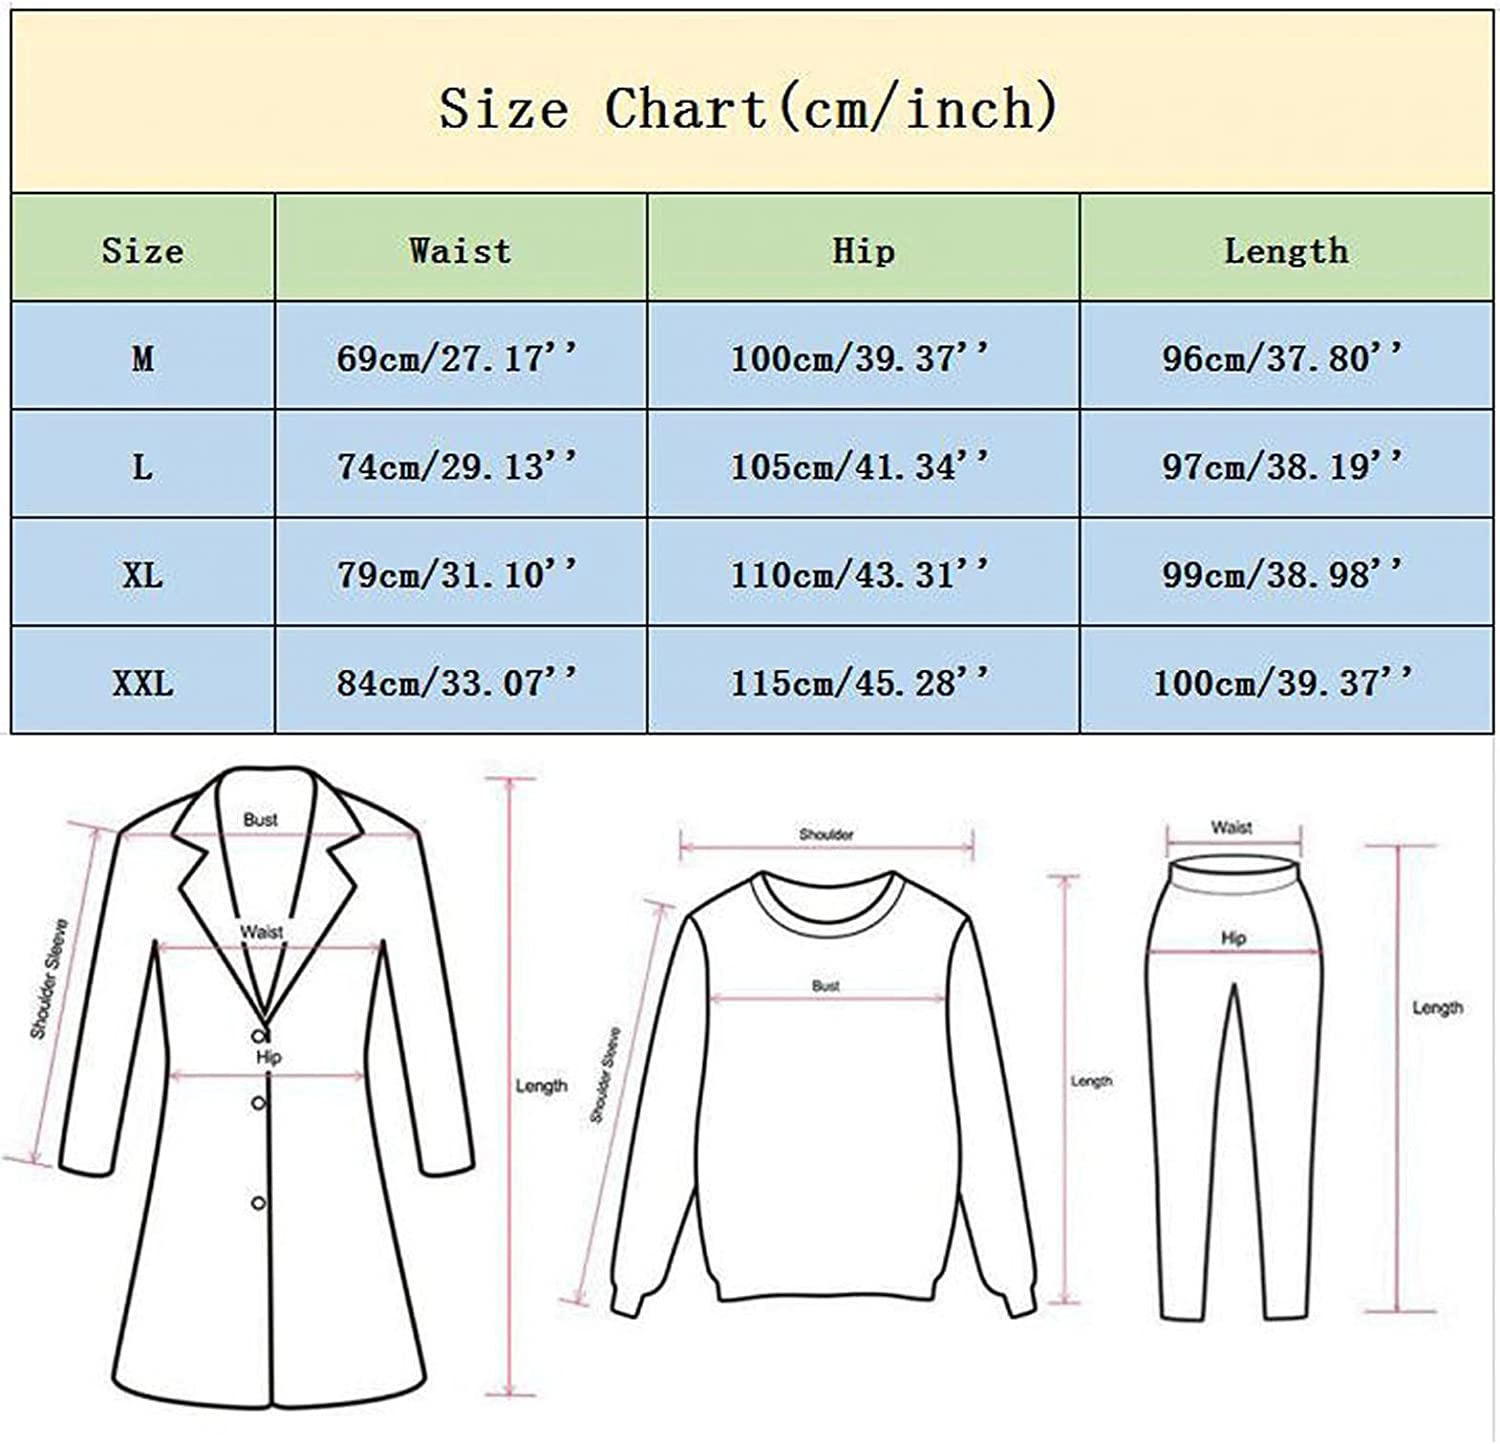 Beshion Swetpants for Men Slim Fit Casual Jogger Pants Mid-Waist Drawstring Tapered AthleticRunning Trousers with Pocket